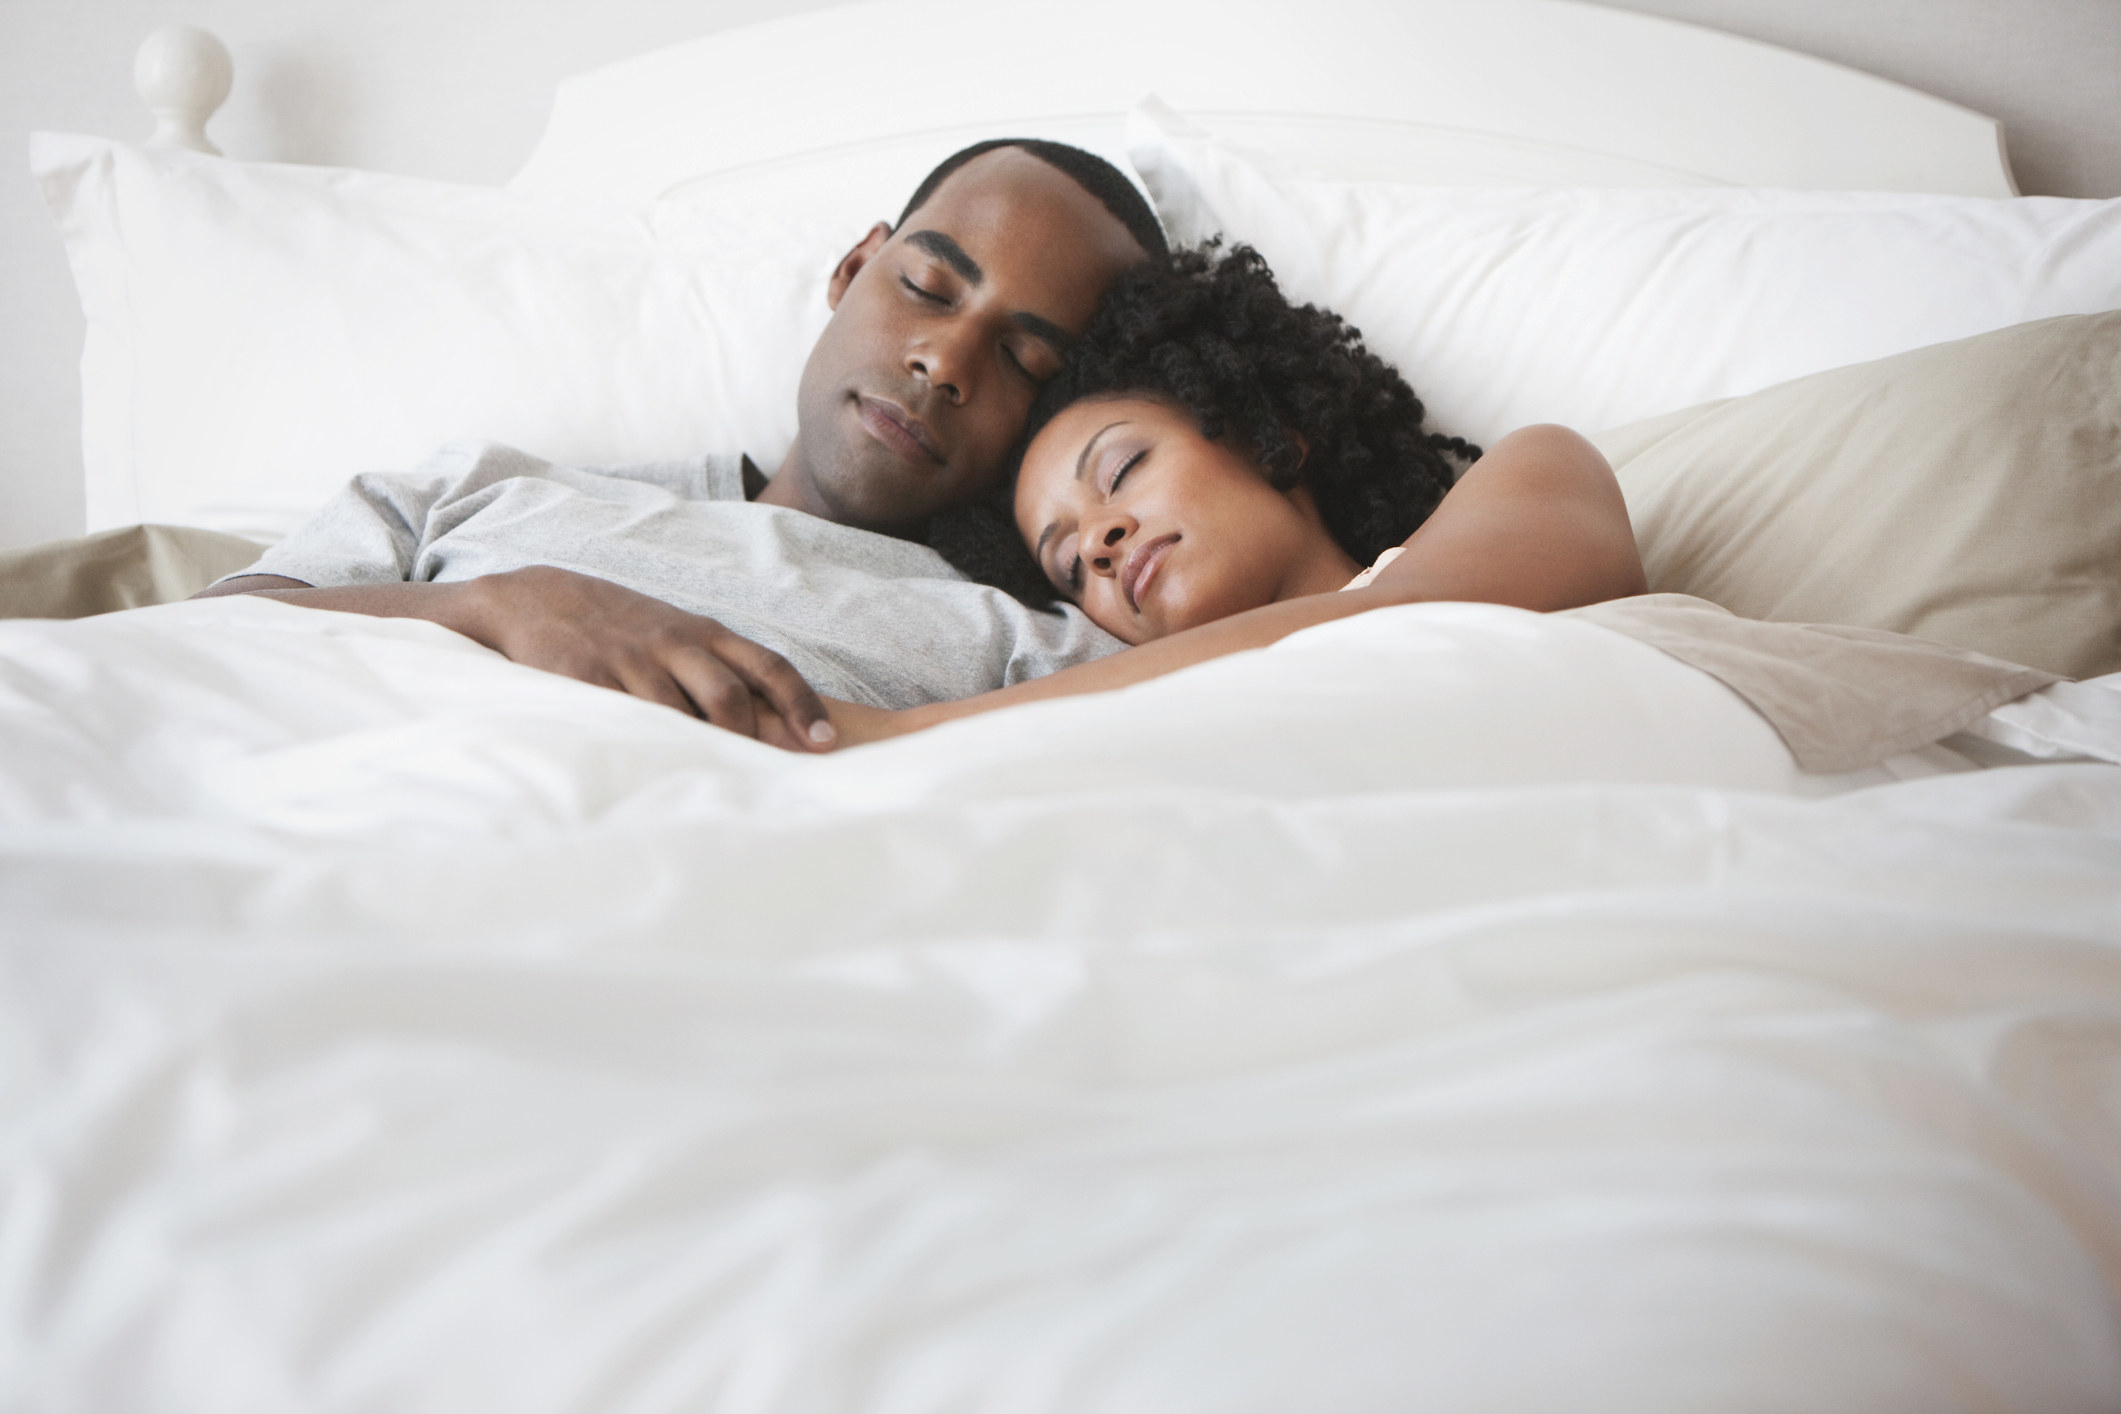 A couple sleeping in bed